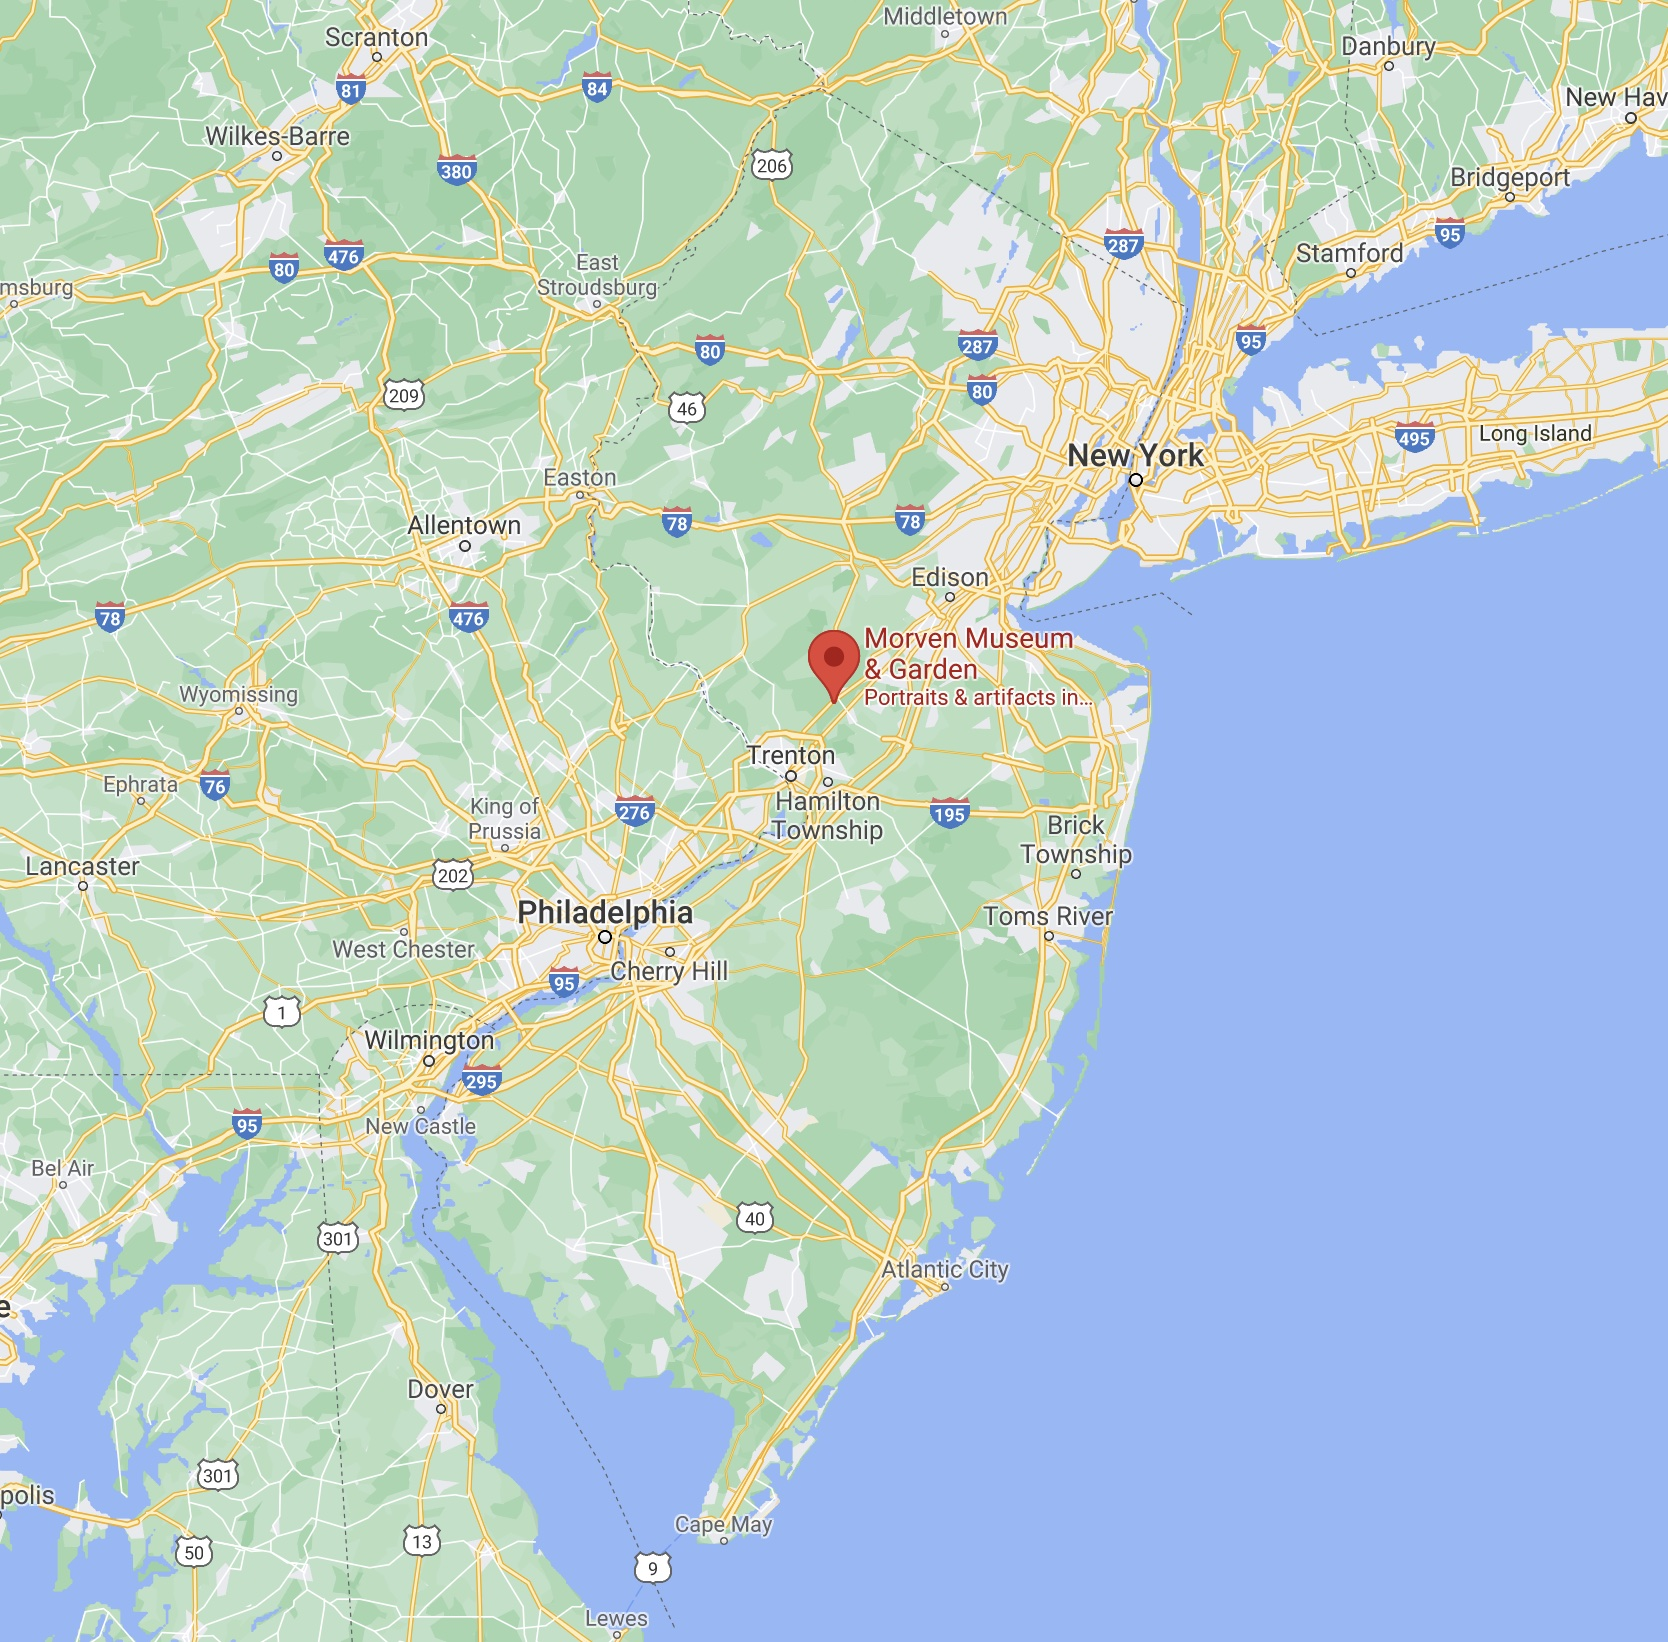 Map of New Jersey, with red pin in location of Morven Museum.